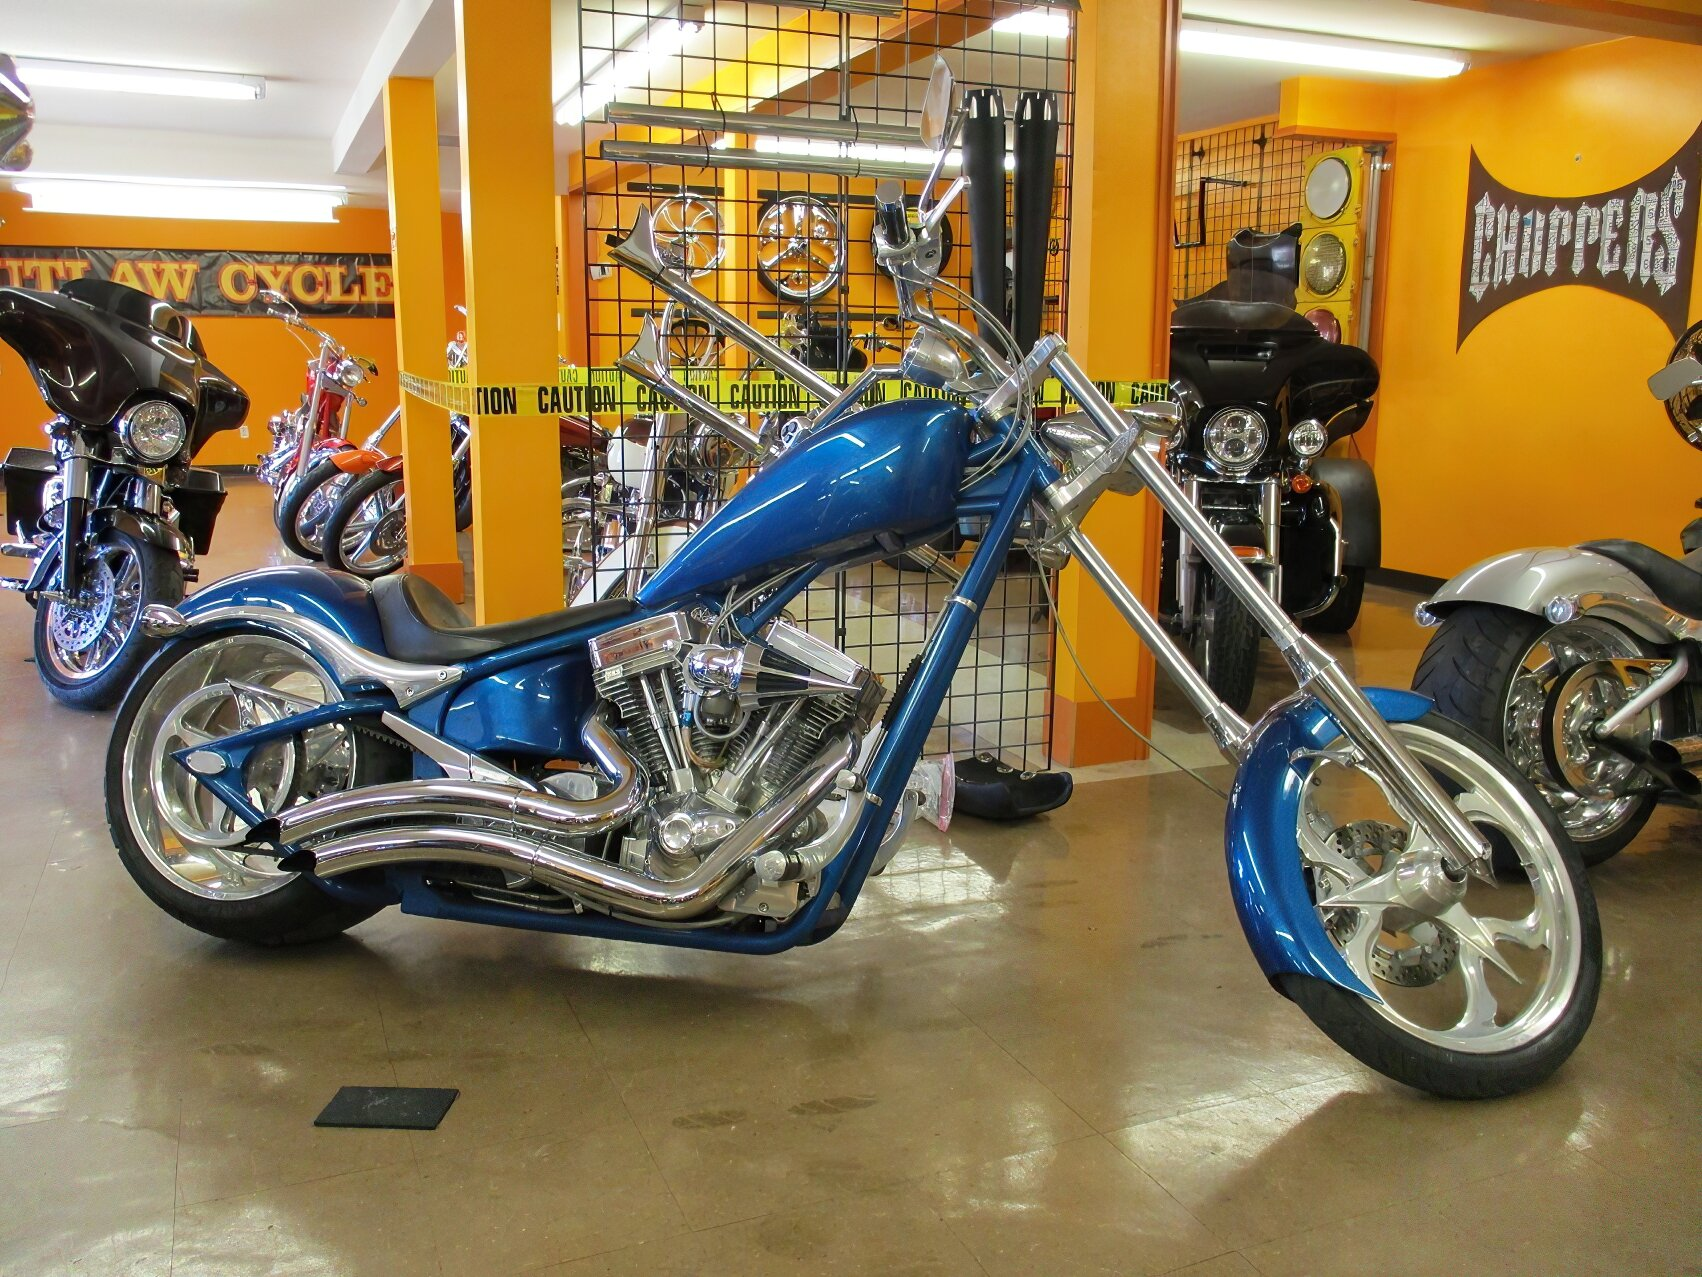 Scottys Choppers All Scottys Choppers - ID: 178511